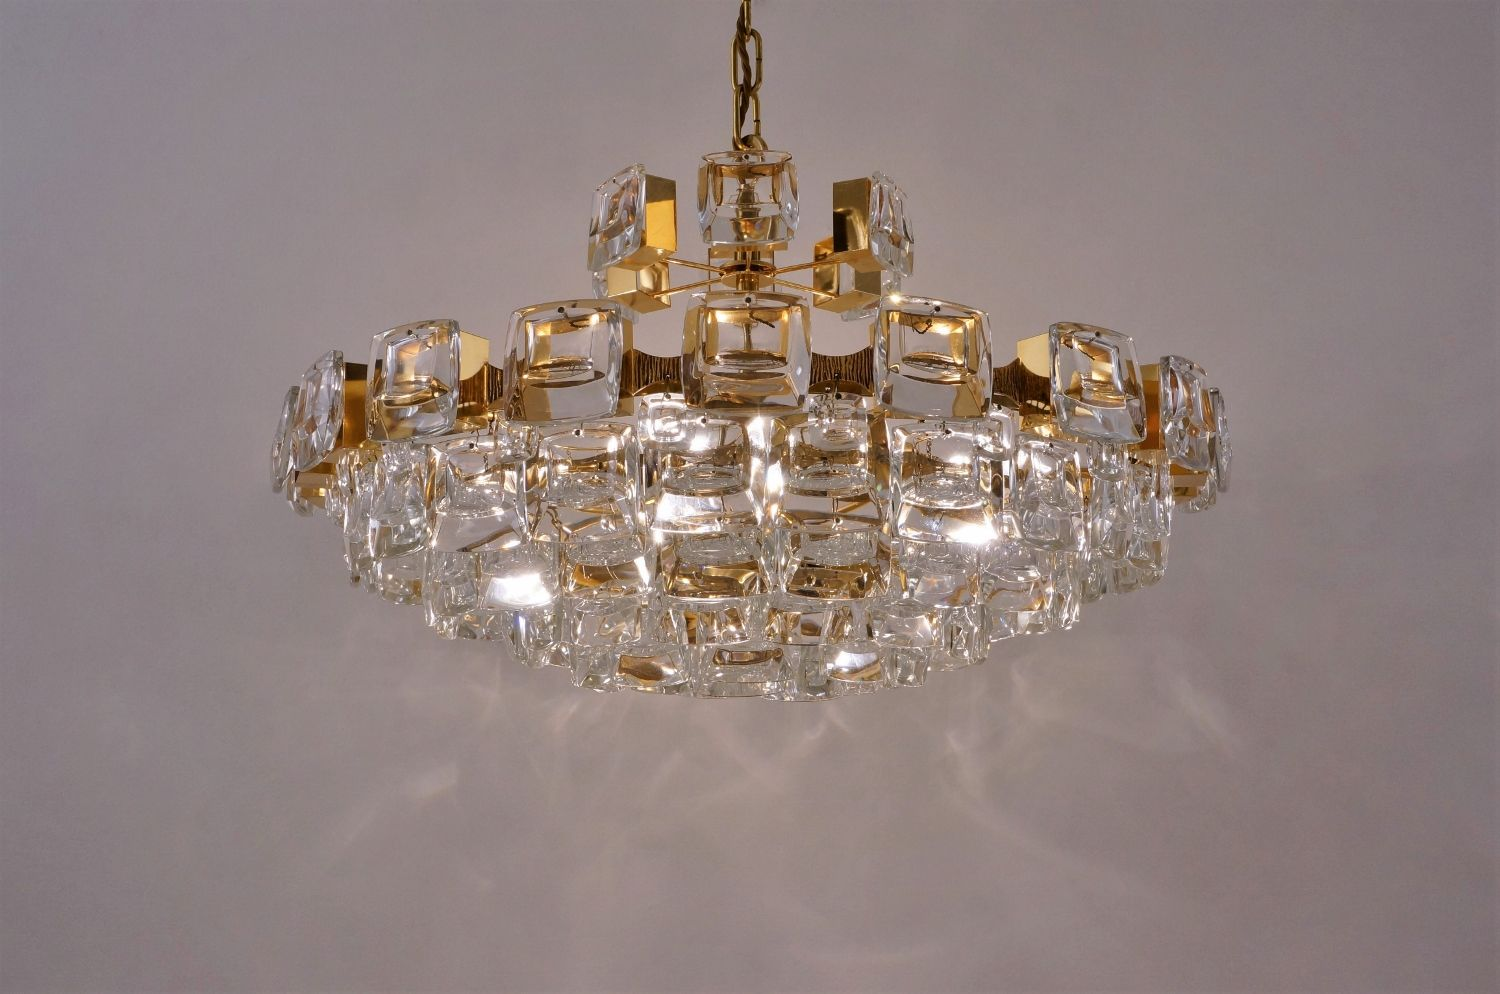 Vintage german gold plated chandelier with 101 optical crystals from vintage german gold plated chandelier with 101 optical crystals from palwa for sale at pamono aloadofball Choice Image